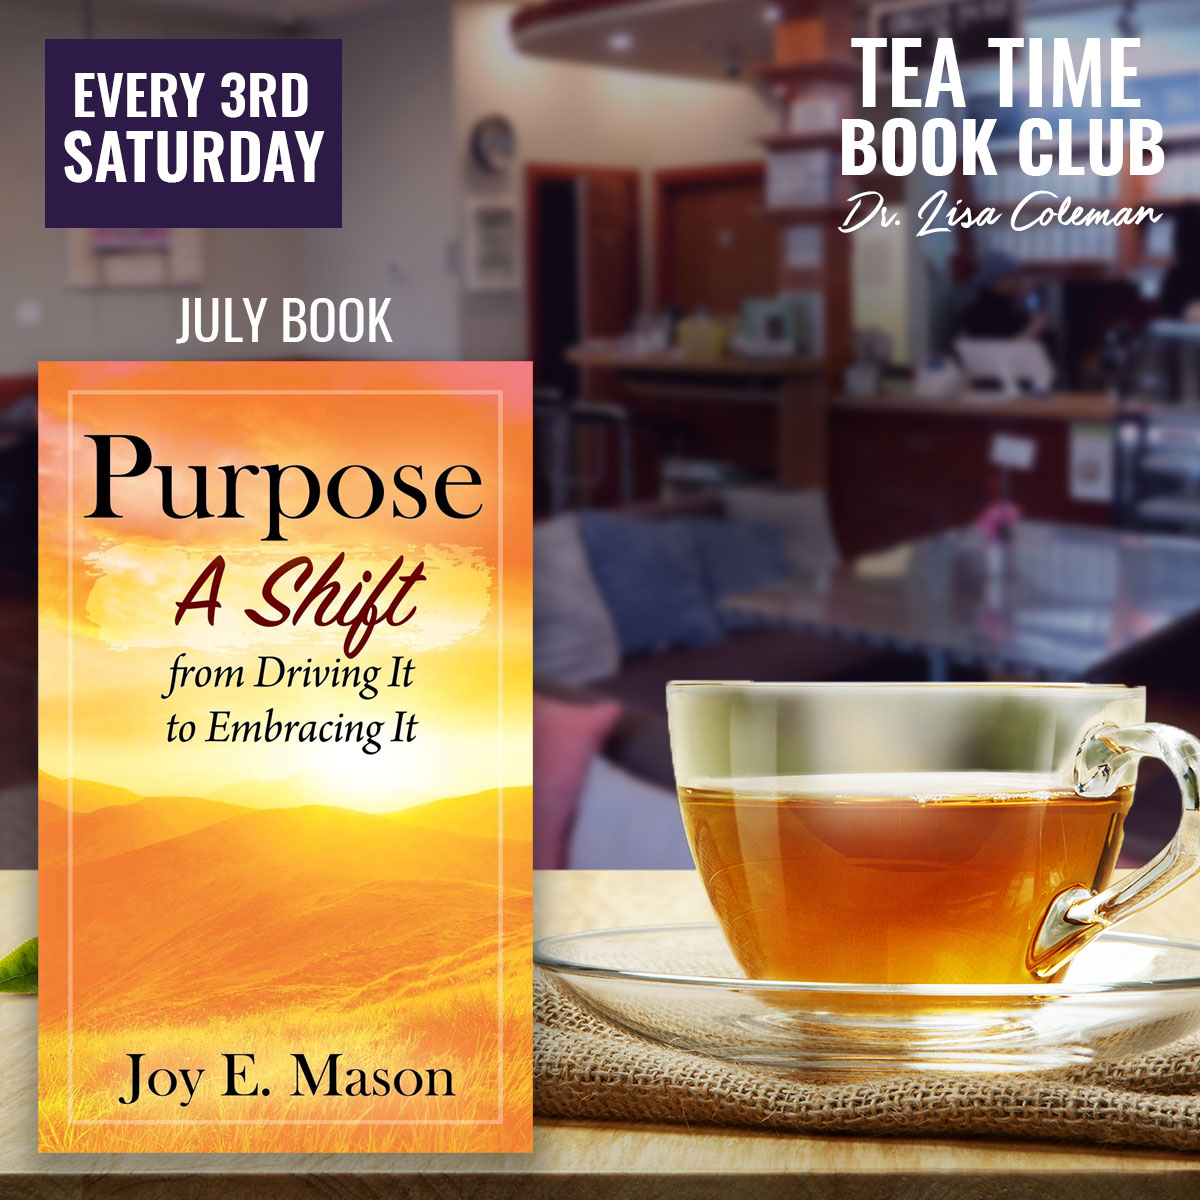 Tea Time Book Club